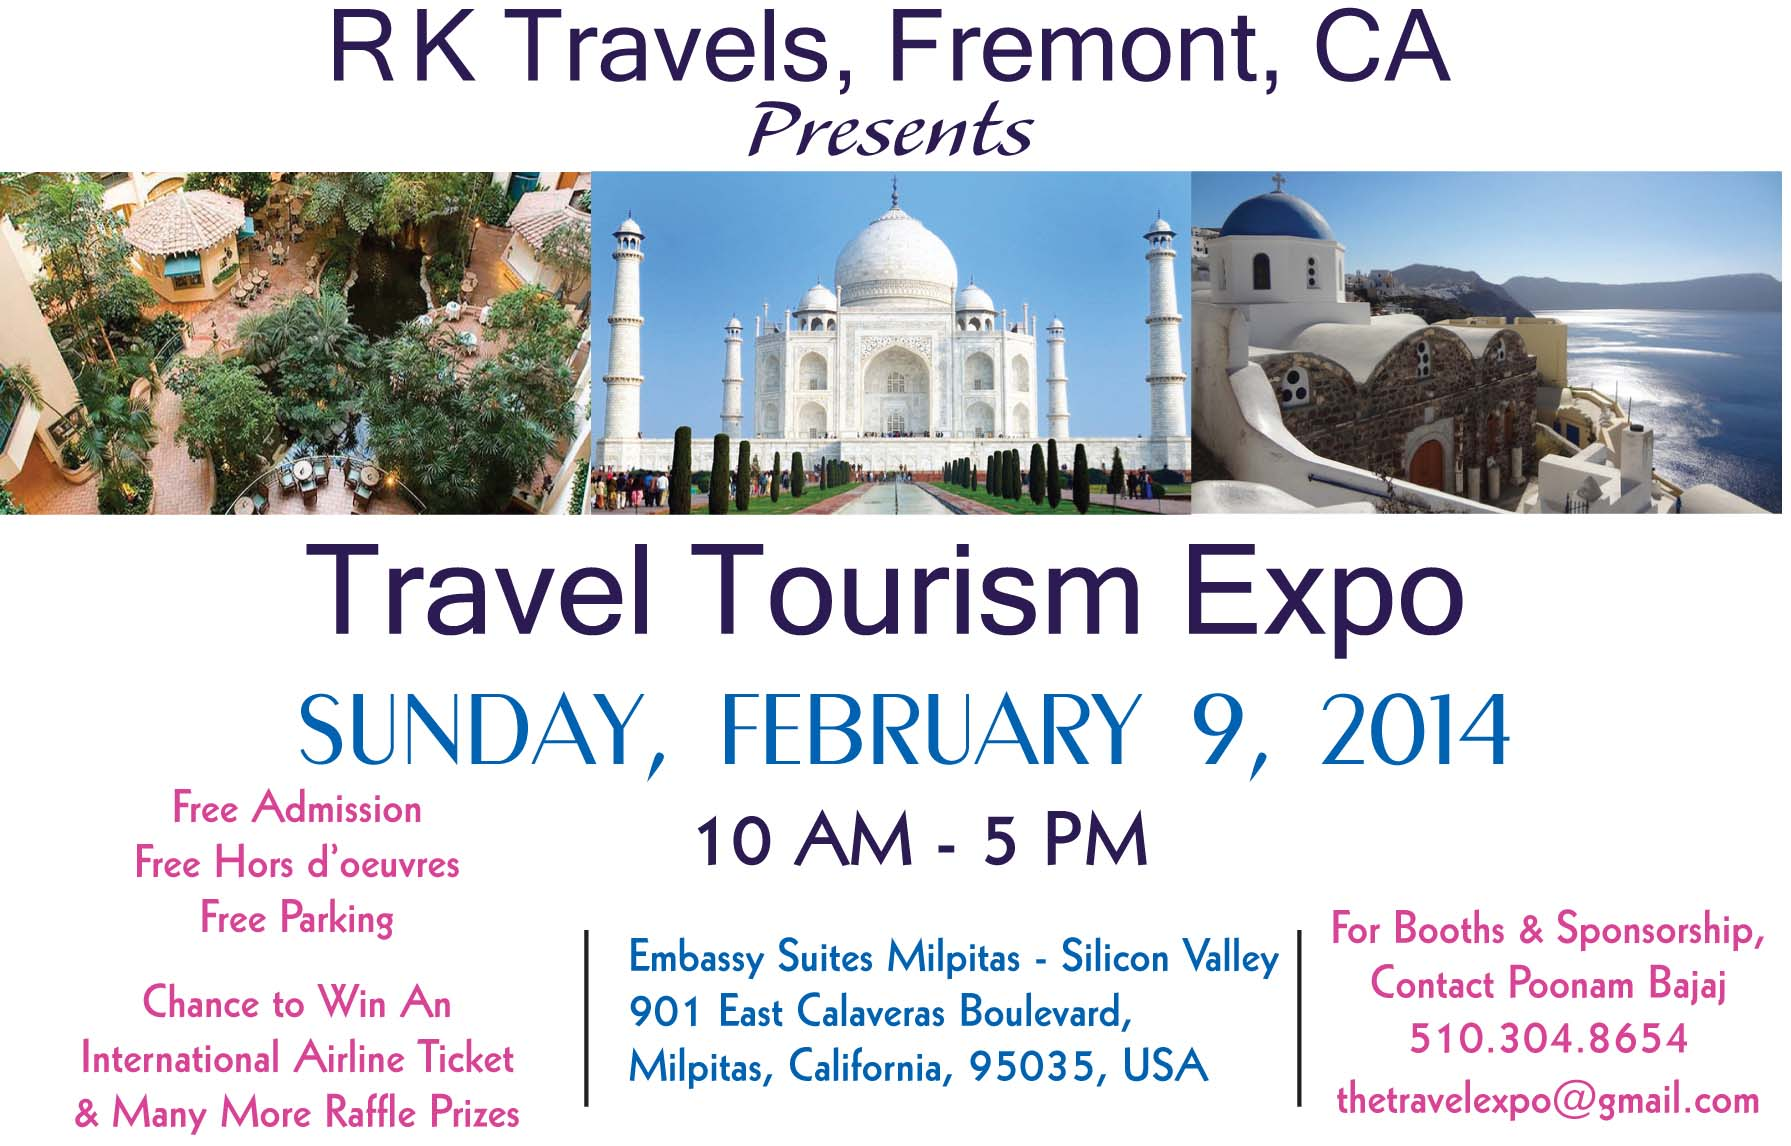 Travel & Tourism Expo